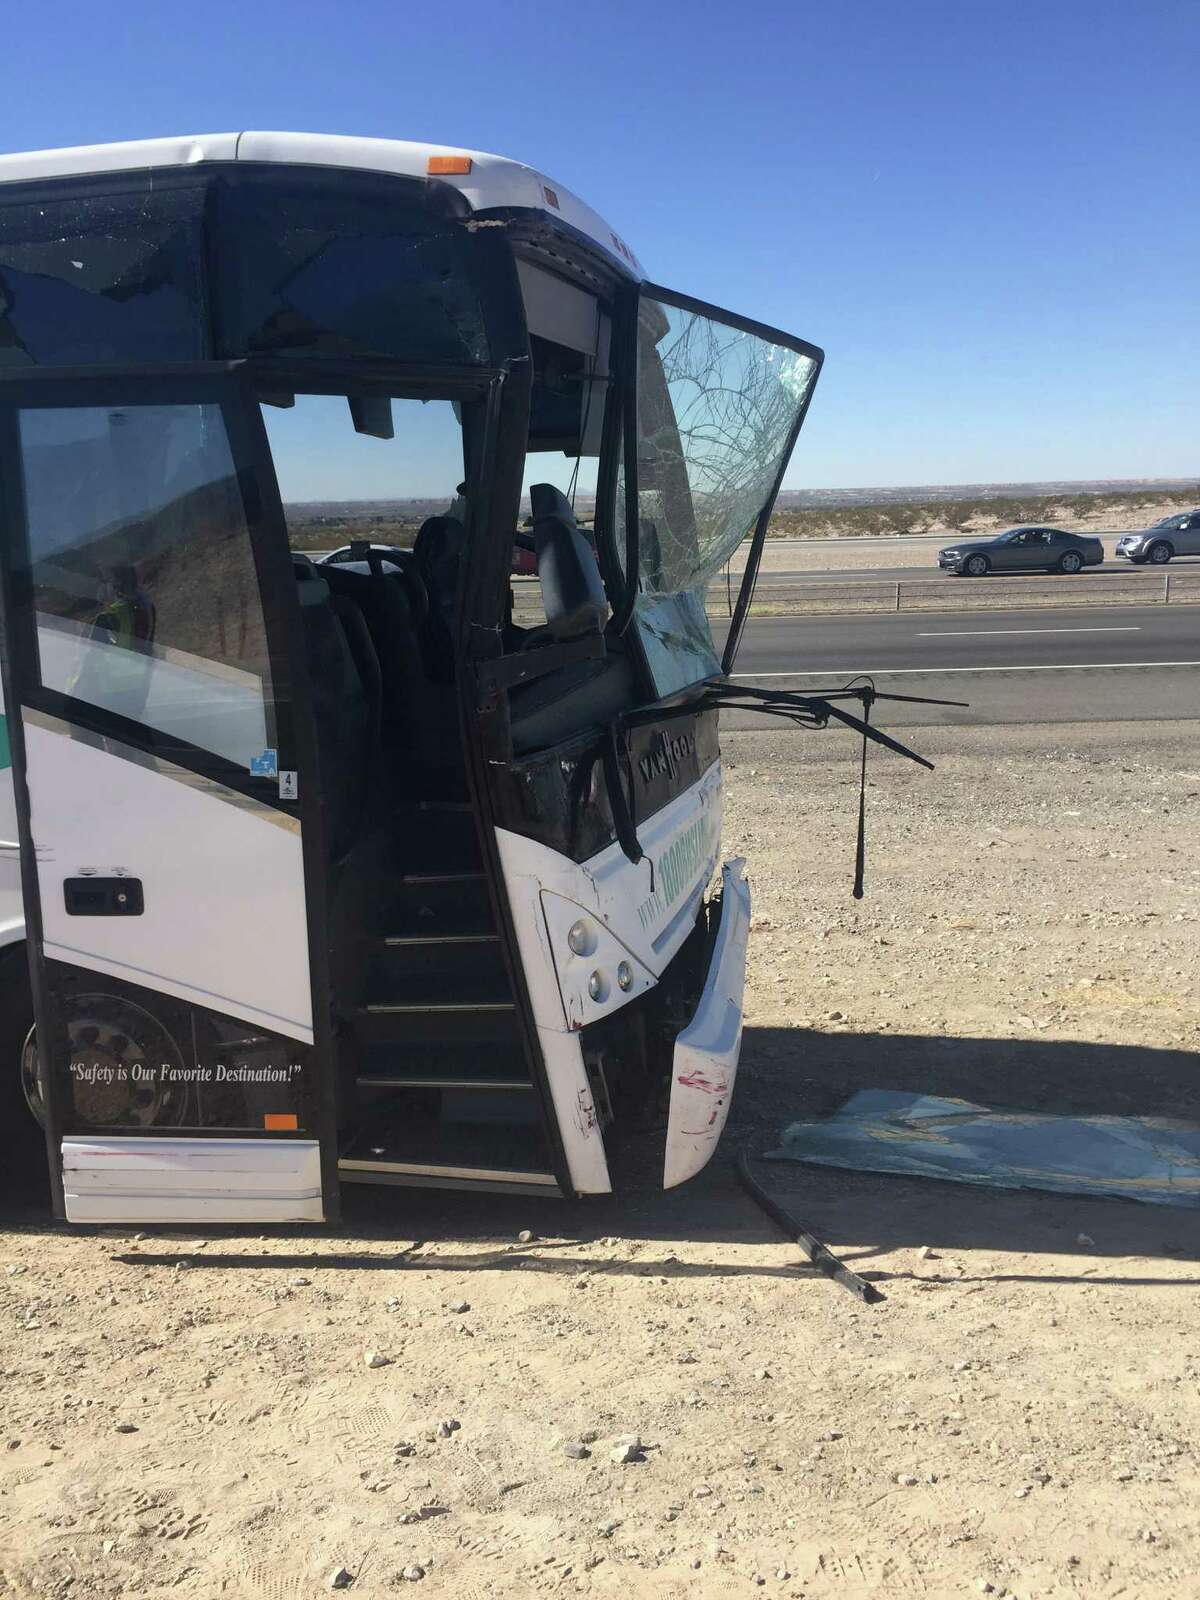 One of three busses chartered by Texas State shows damage Saturday after an accident on the Texas and New Mexico border. Five people were transported to an area hospital. The busses, carrying the Texas State football team, cheerleaders and support staff was en route to a football game at New Mexico State.